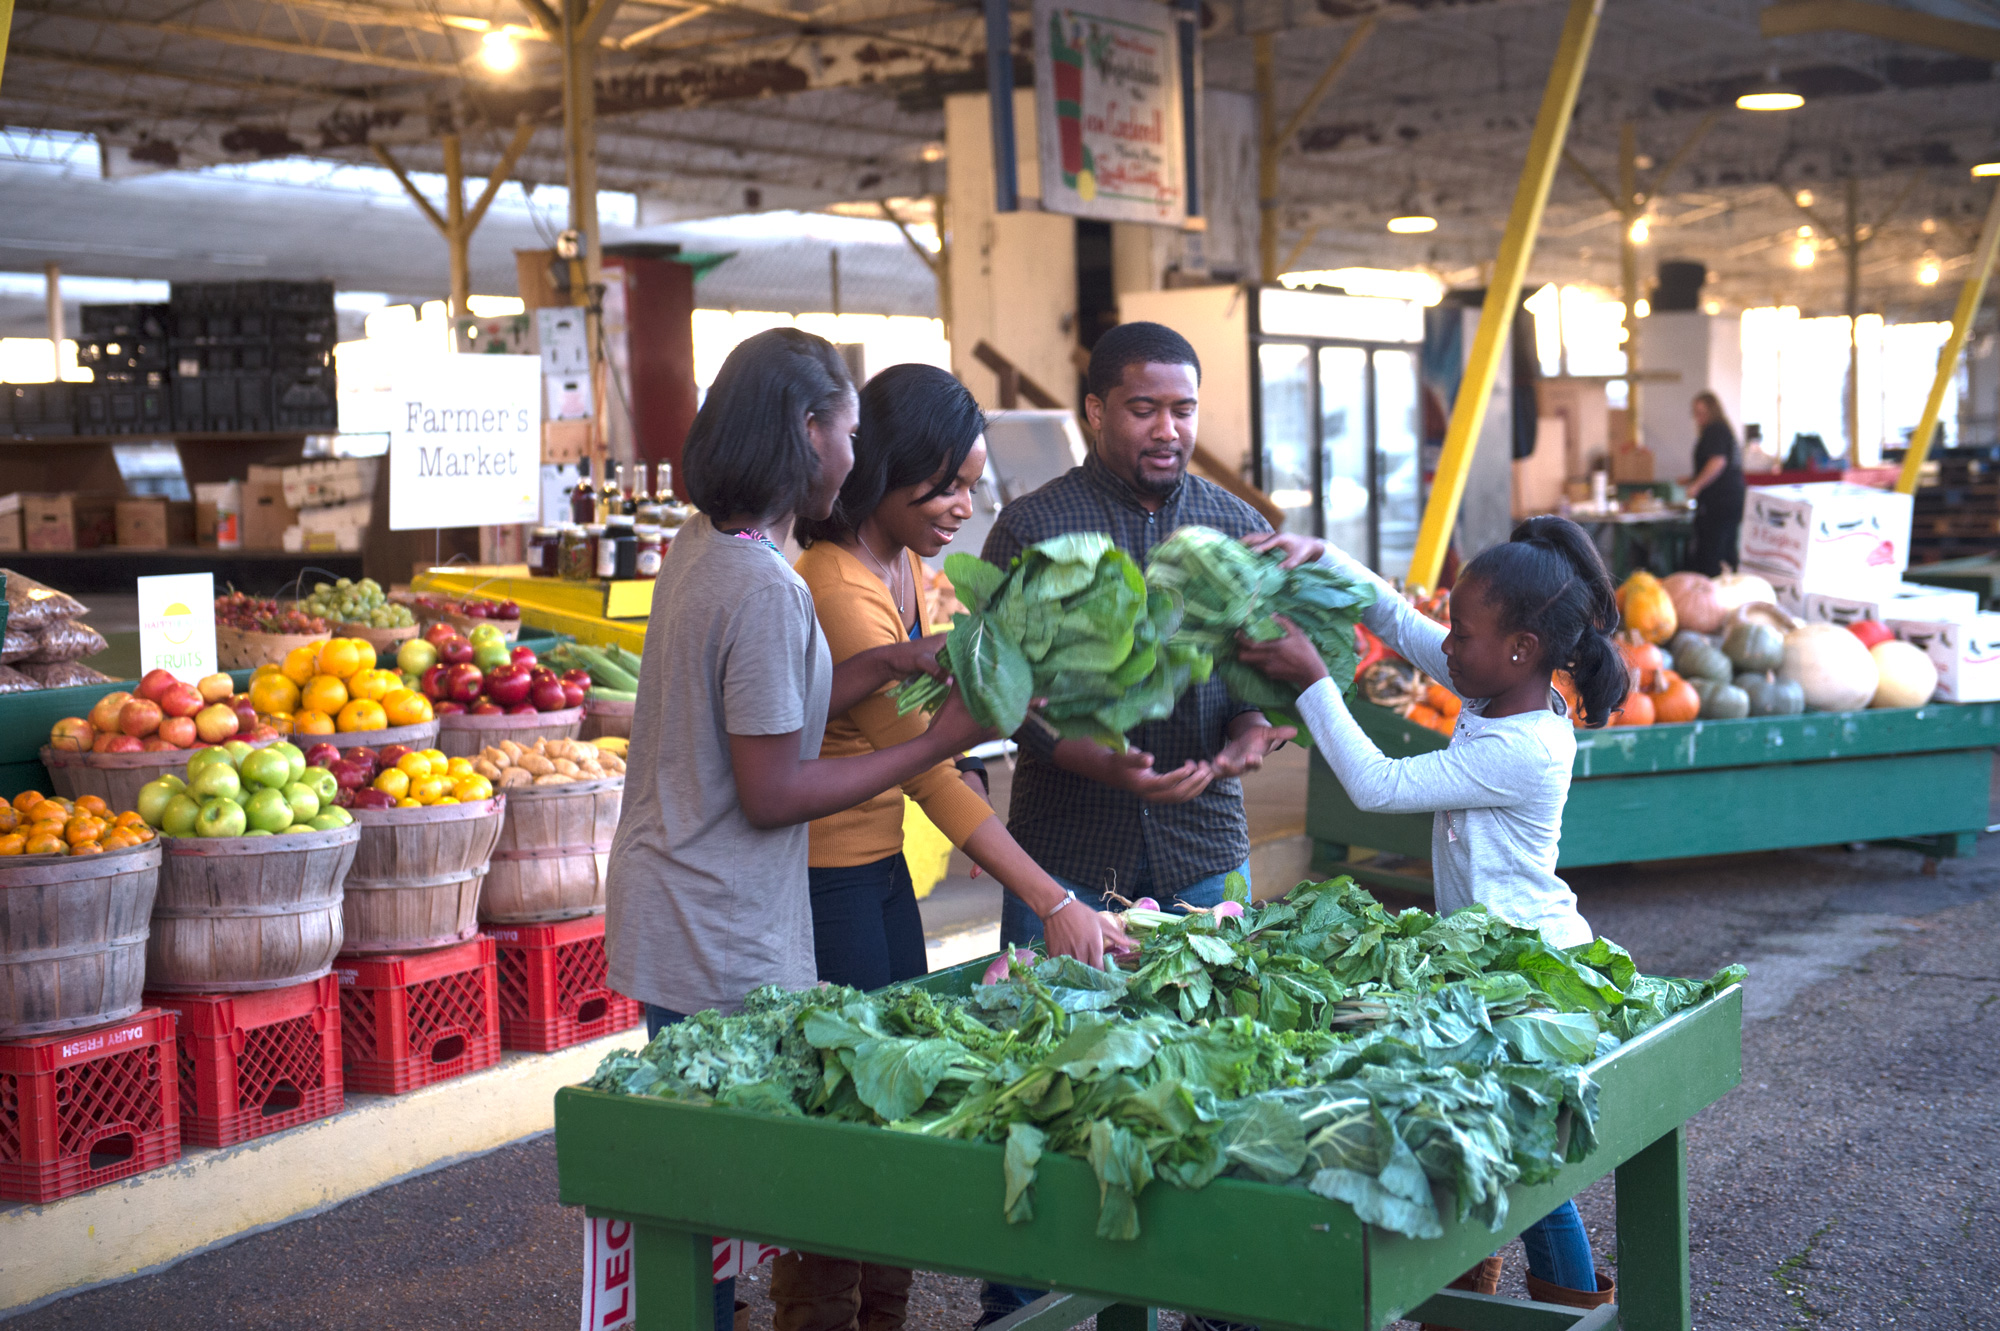 Family choosing greens at Farmer's Market.